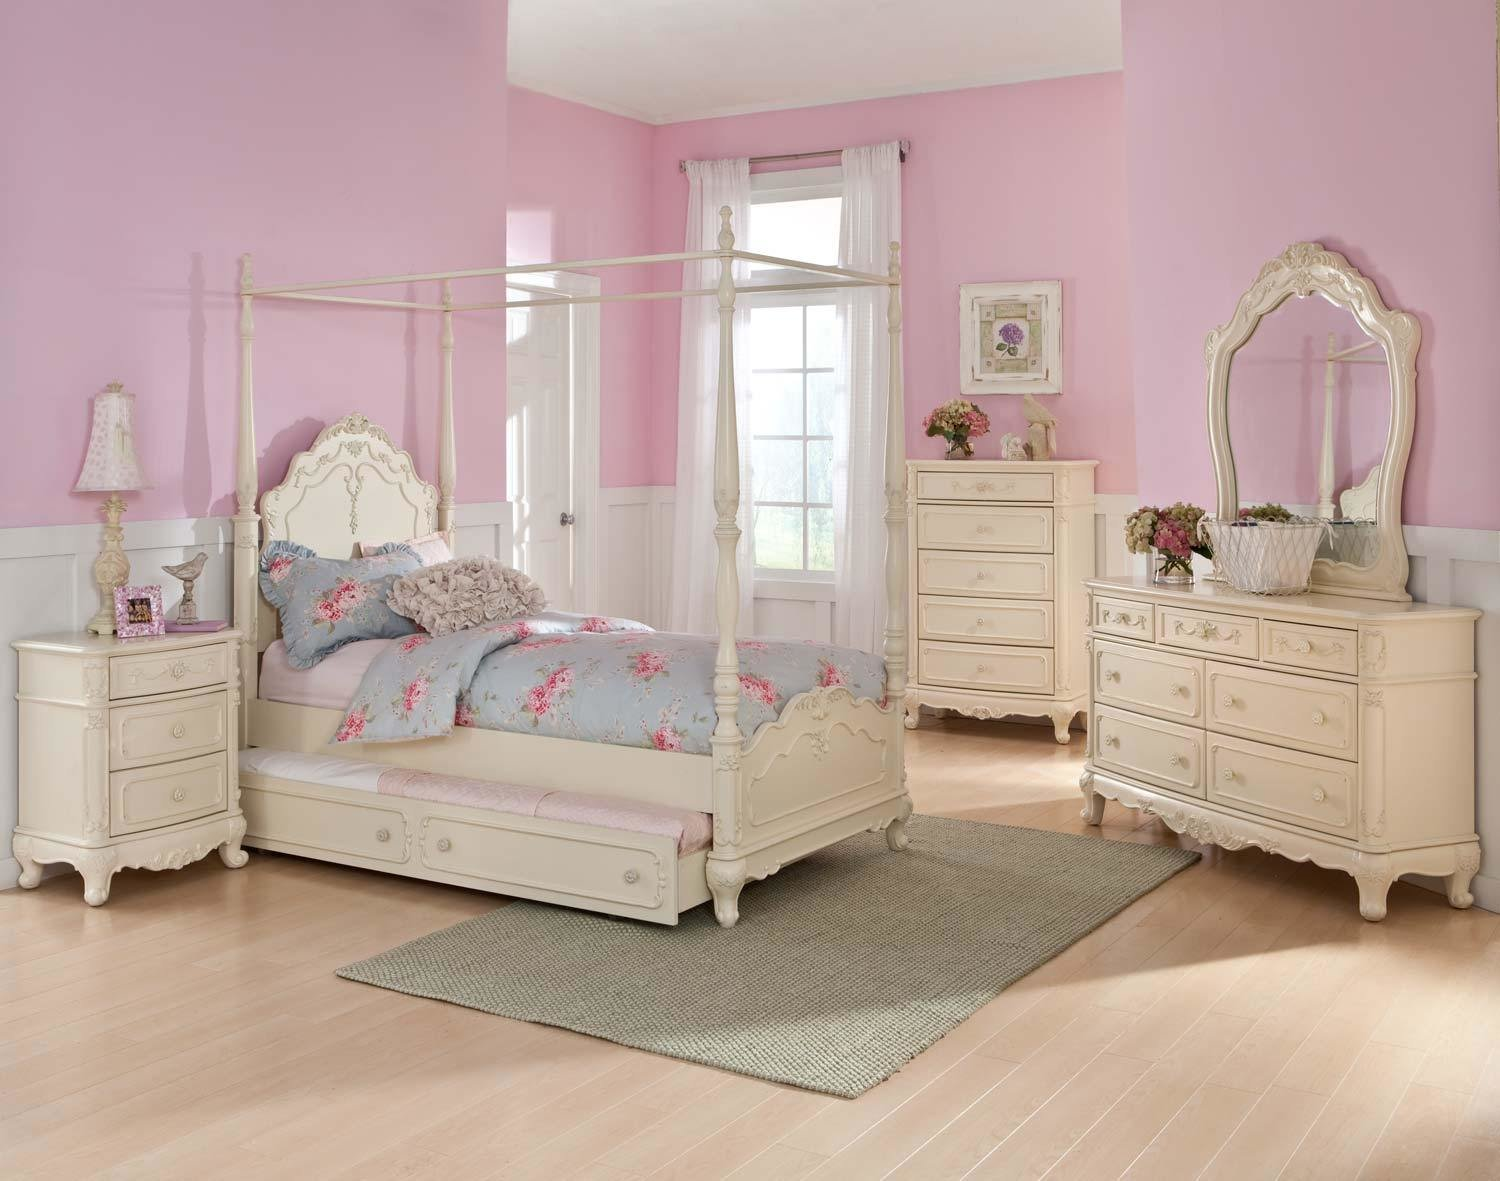 Best Homelegance Cinderella Full White 5Pc Canopy Bedroom Set Dallas Tx Kids Bedroom Group With Pictures